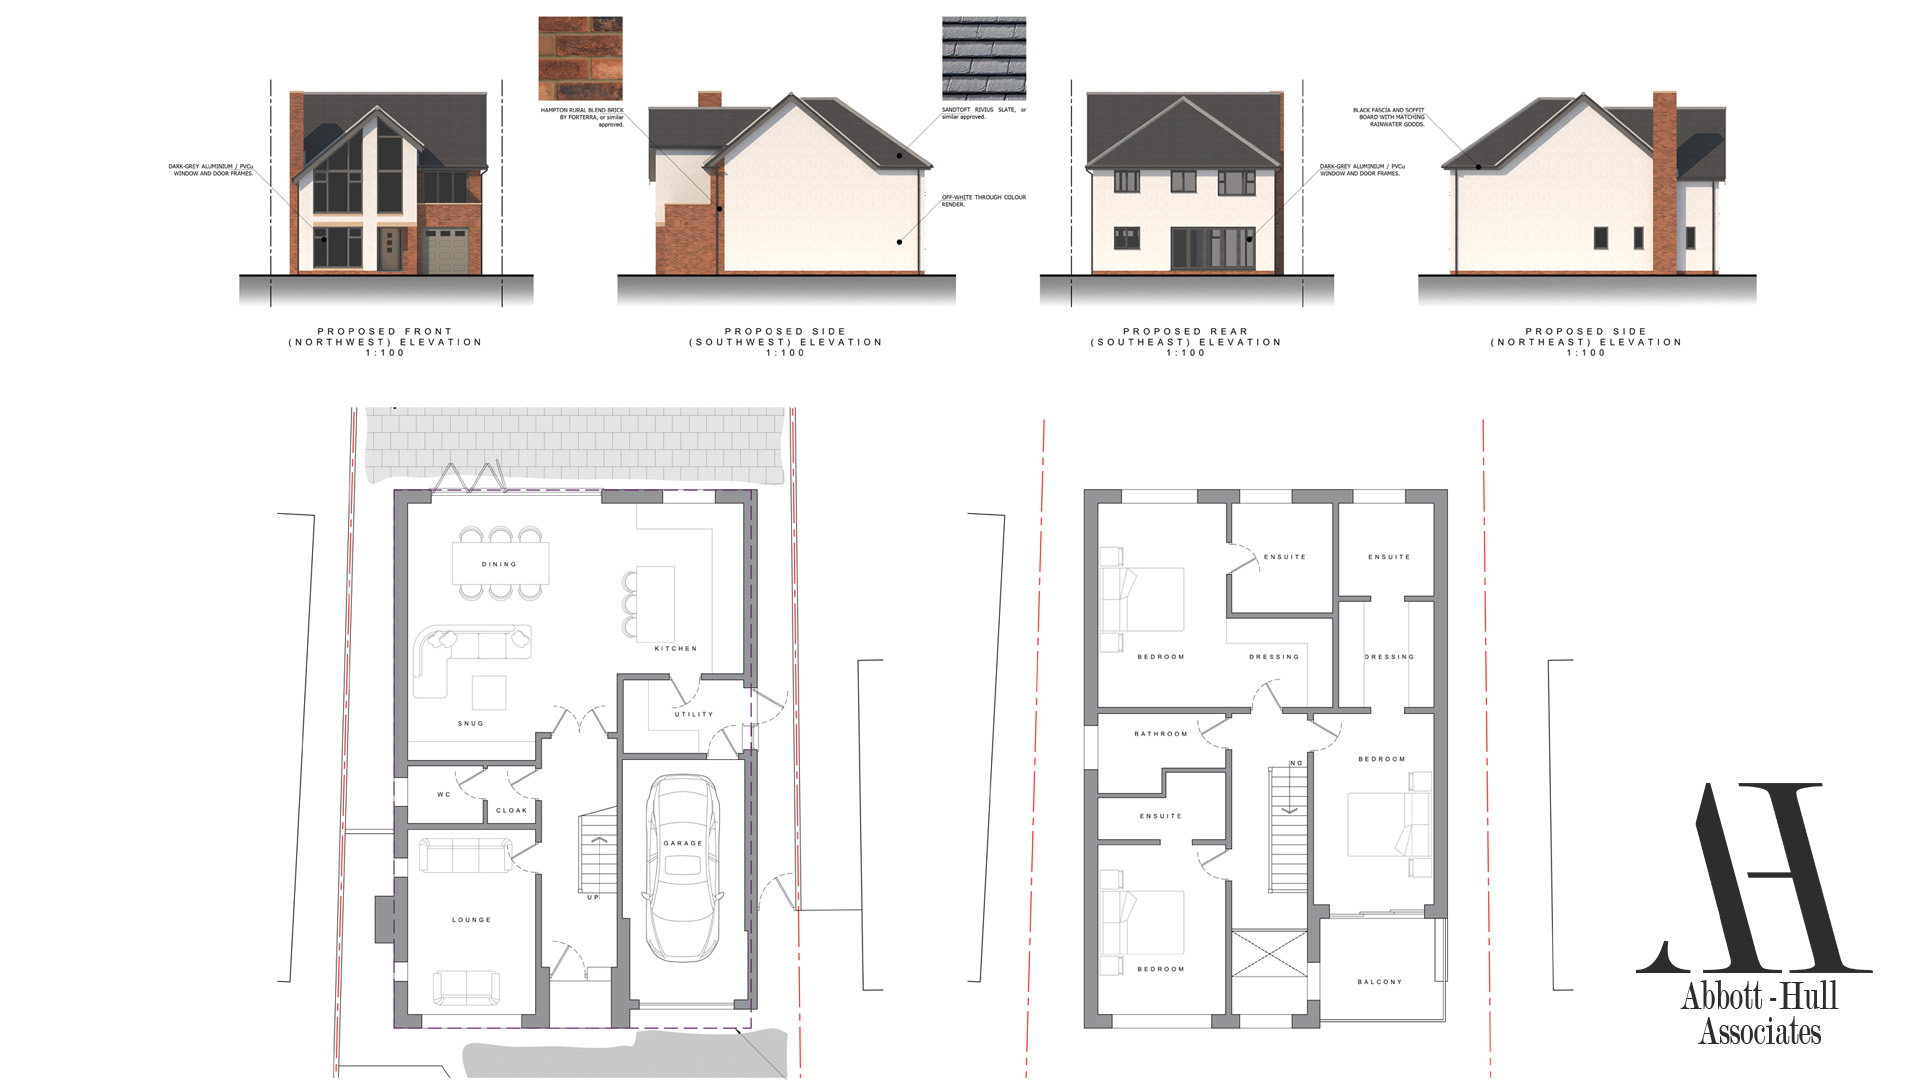 101 Princes Way, Fleetwood - Proposed Plans